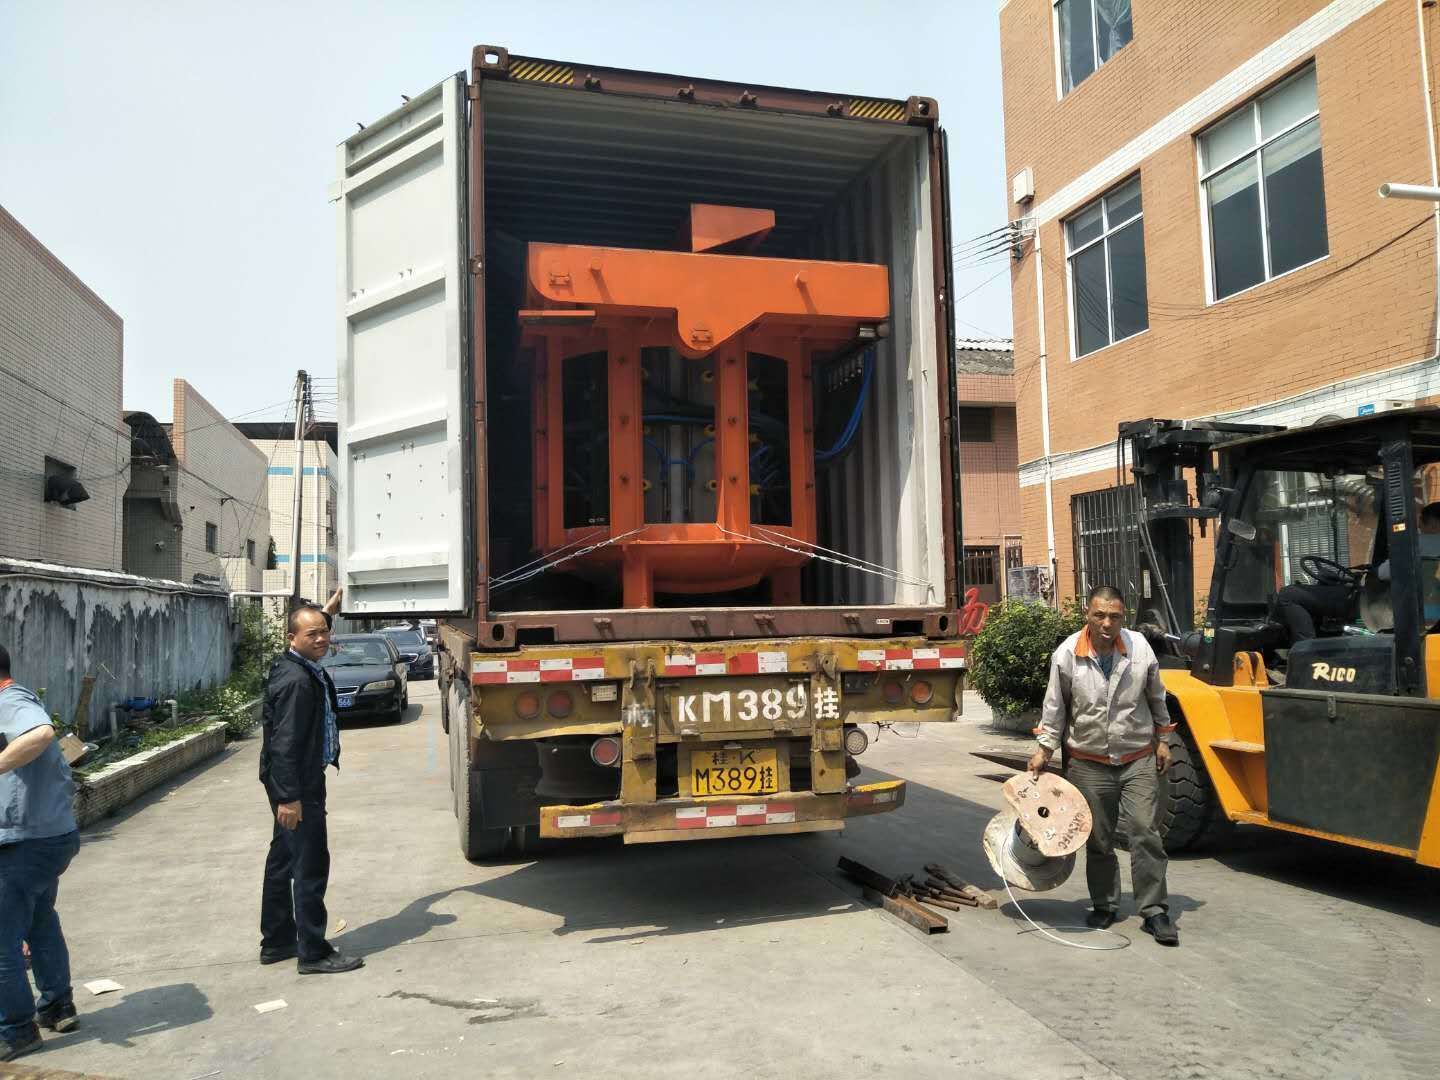 1 Ton of Steel Shell Metal Scrap Melting Furnace Shipped to Bangladesh